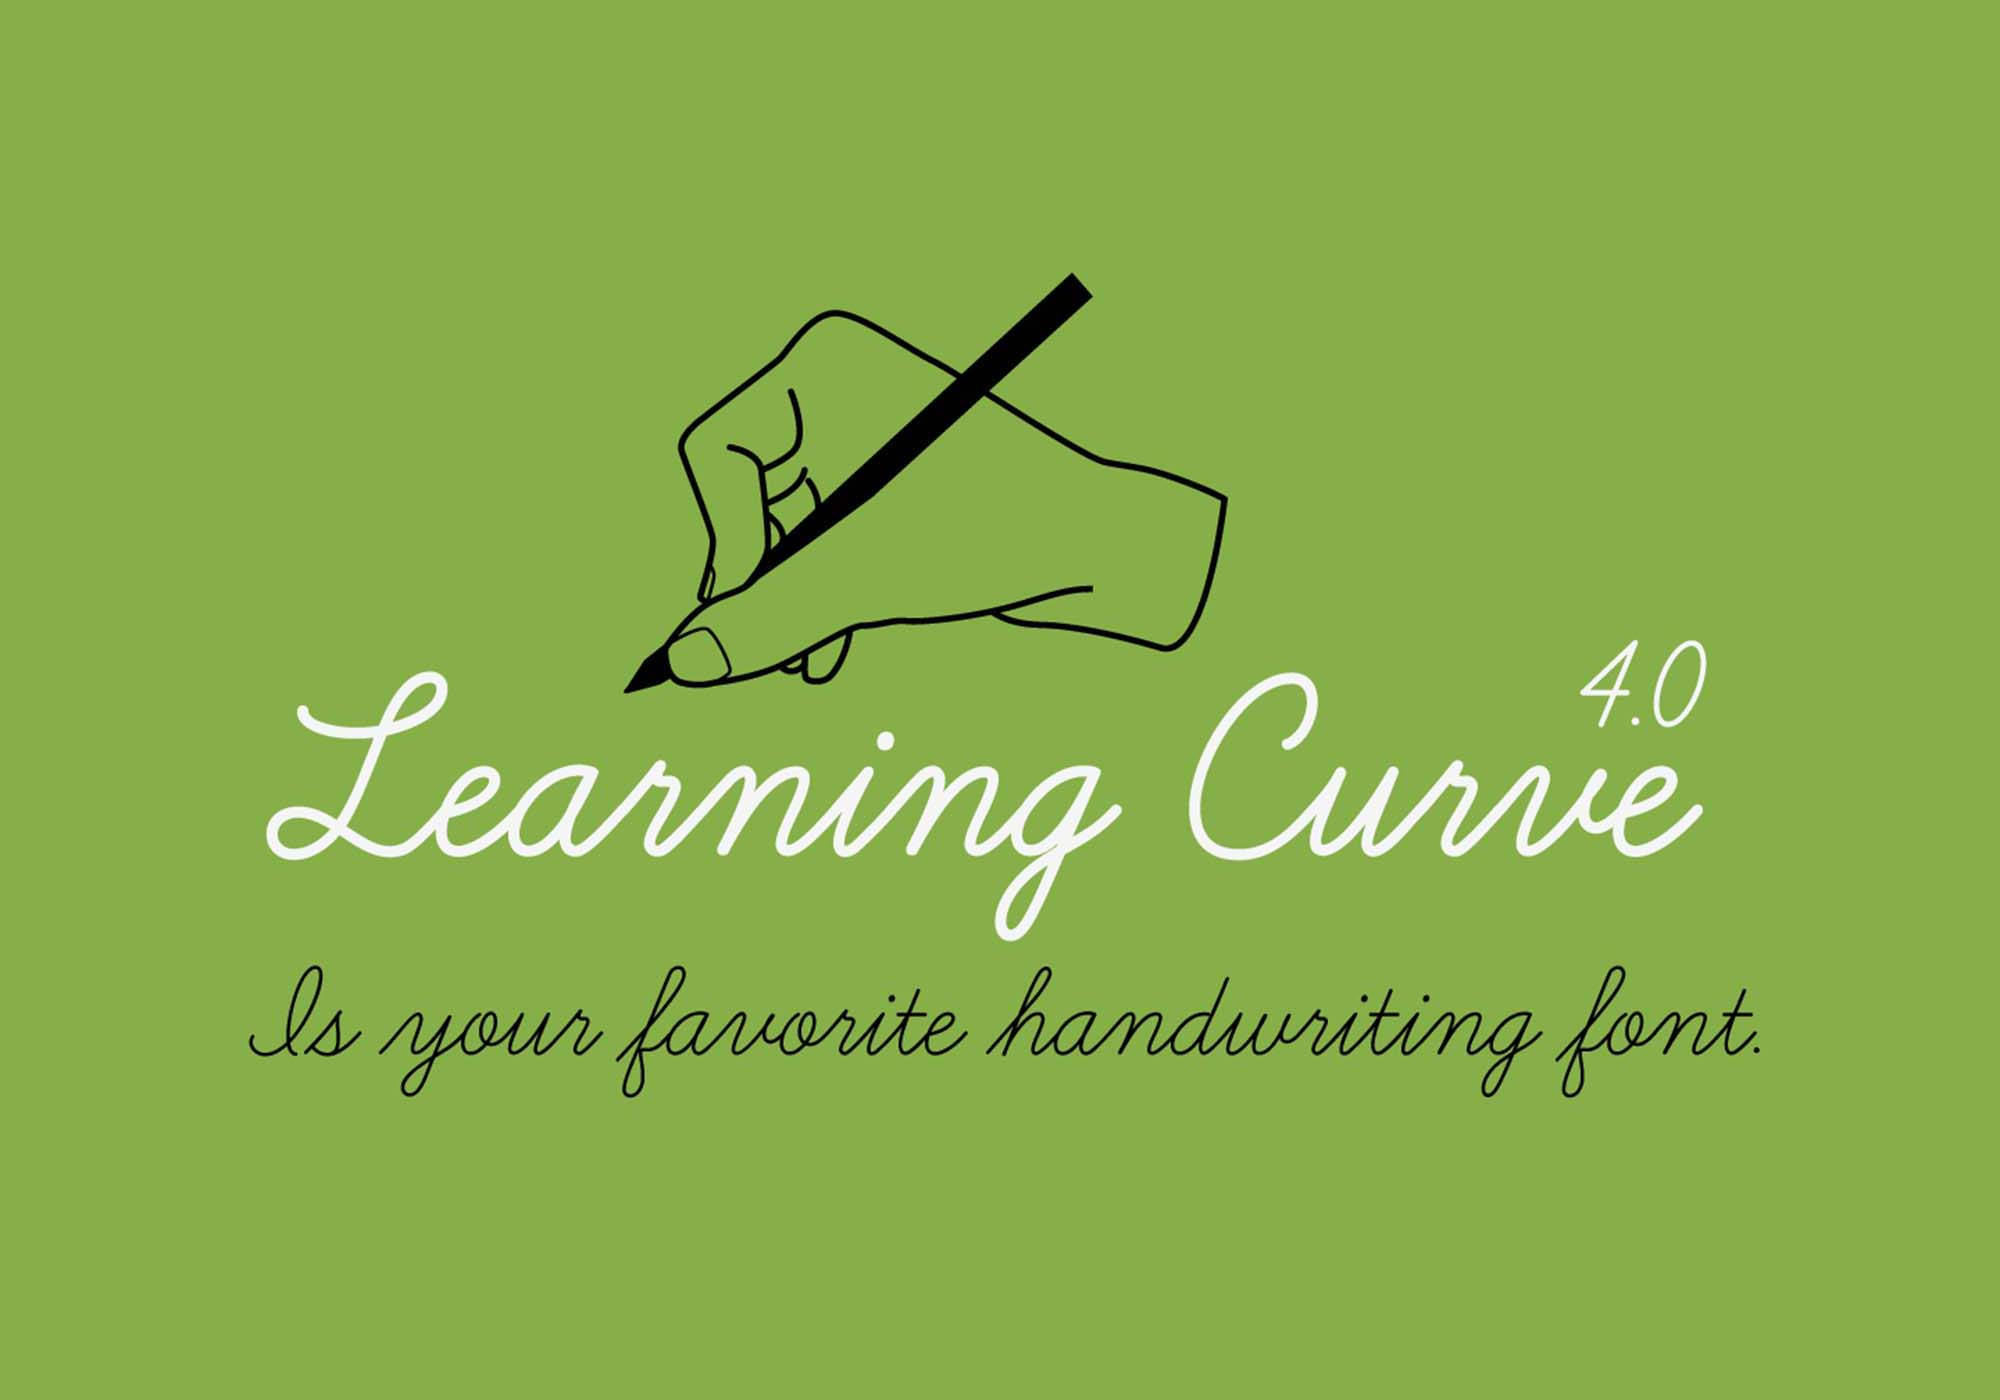 Learning Curve Free Font